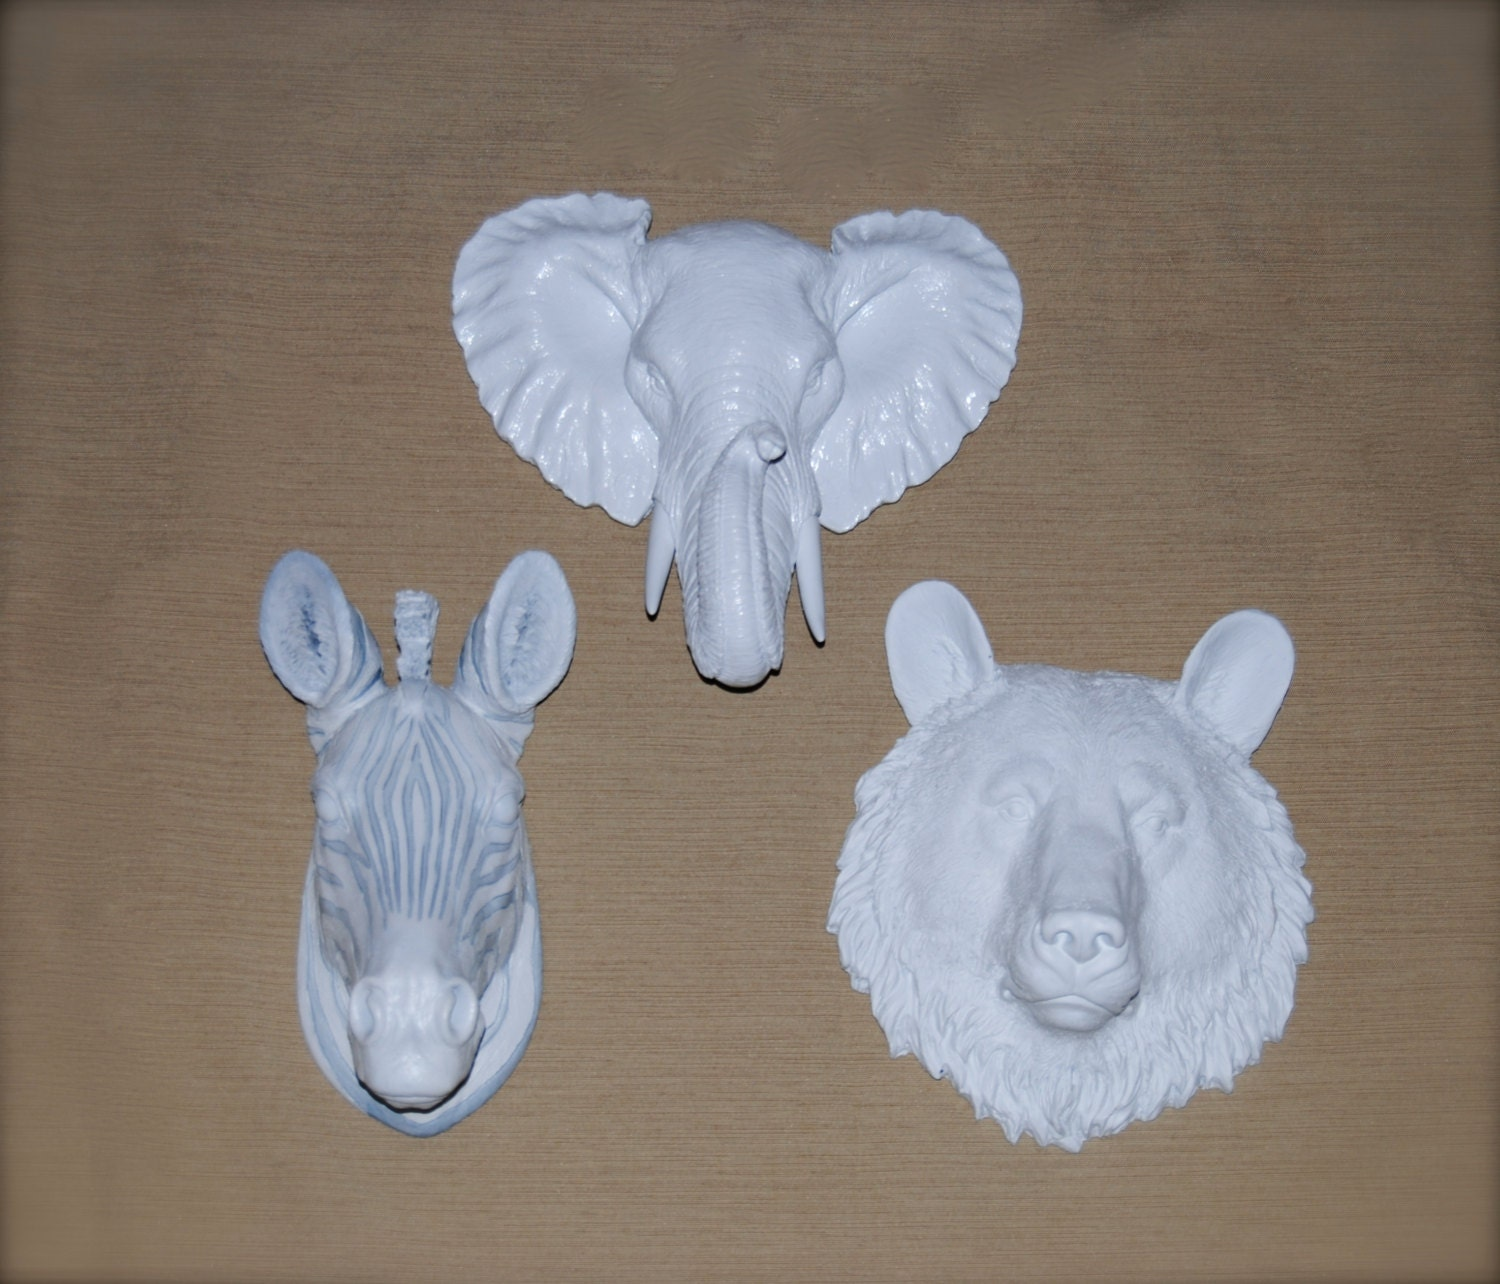 White Gallery Wall Miniature Collection - 3 Faux Taxidermy Small Resin Animal